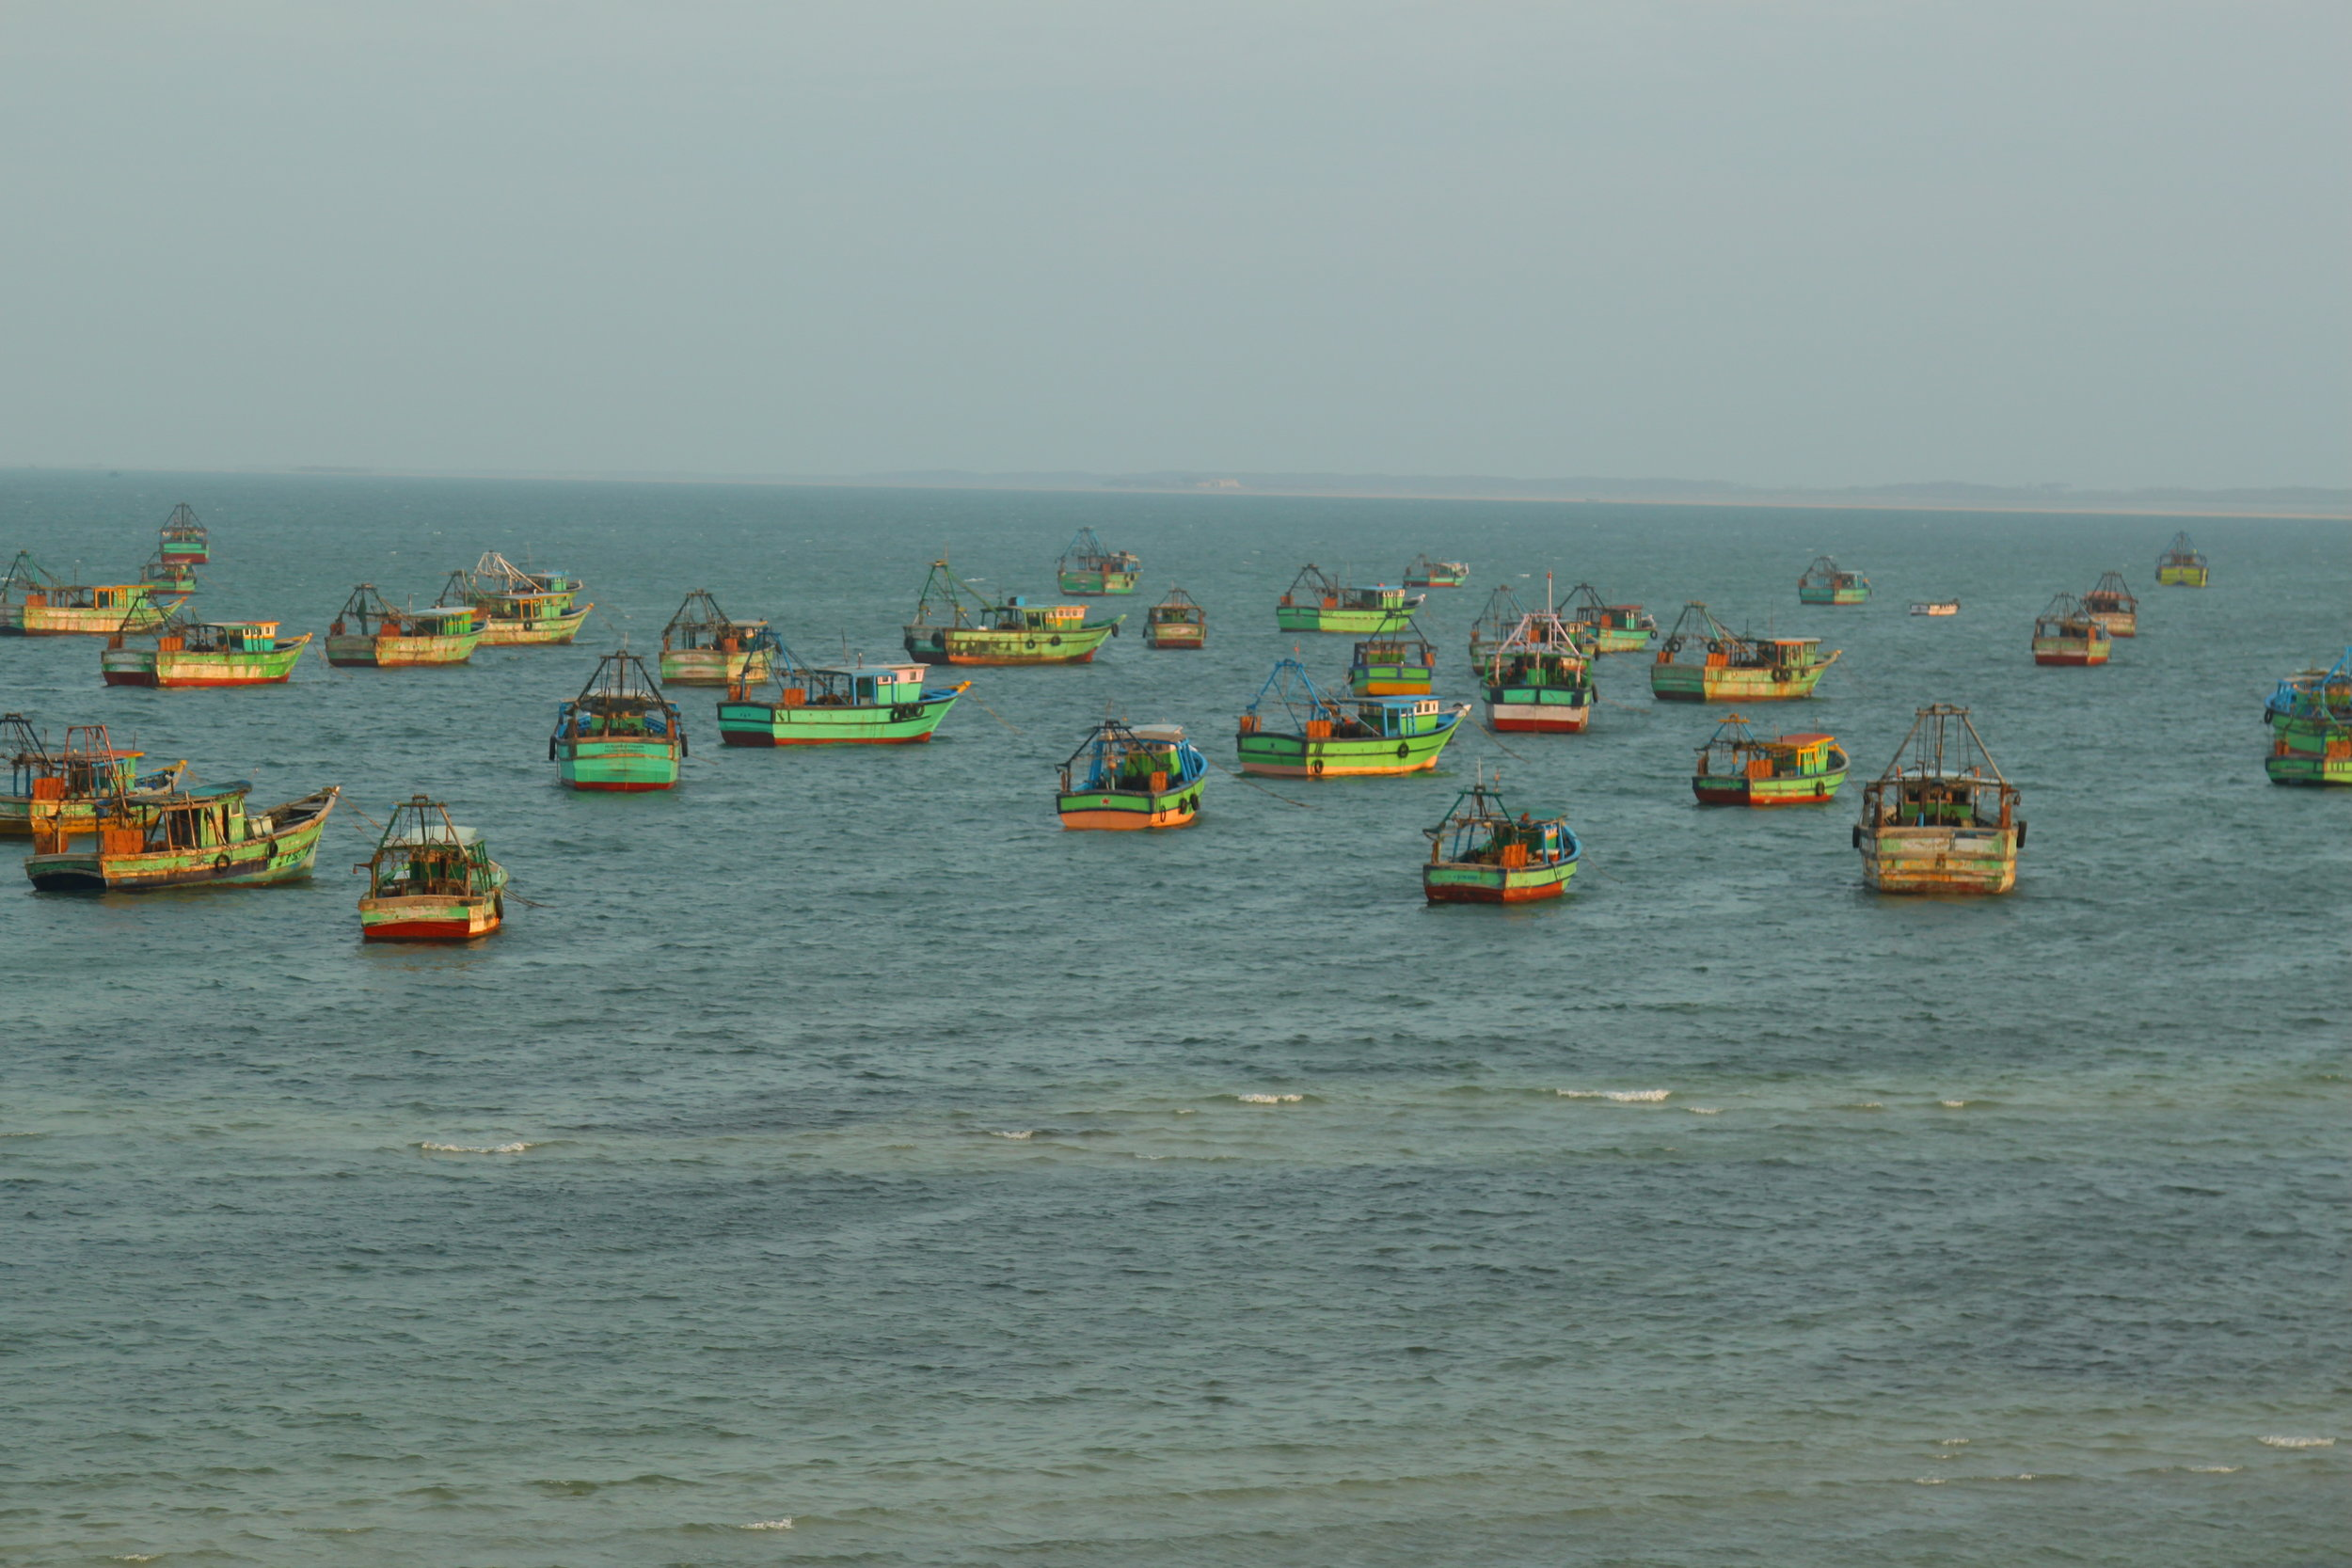 Approximately a 1000 trawlers (mainly bottom trawlers) are in operation in the Rameswaram Region catching everything in their path. Catches here are dwindling so they controversially cross over to Sri Lanka waters on a regular basis.  Photo by Tanvi Vaidyanathan/Project Seahorse.